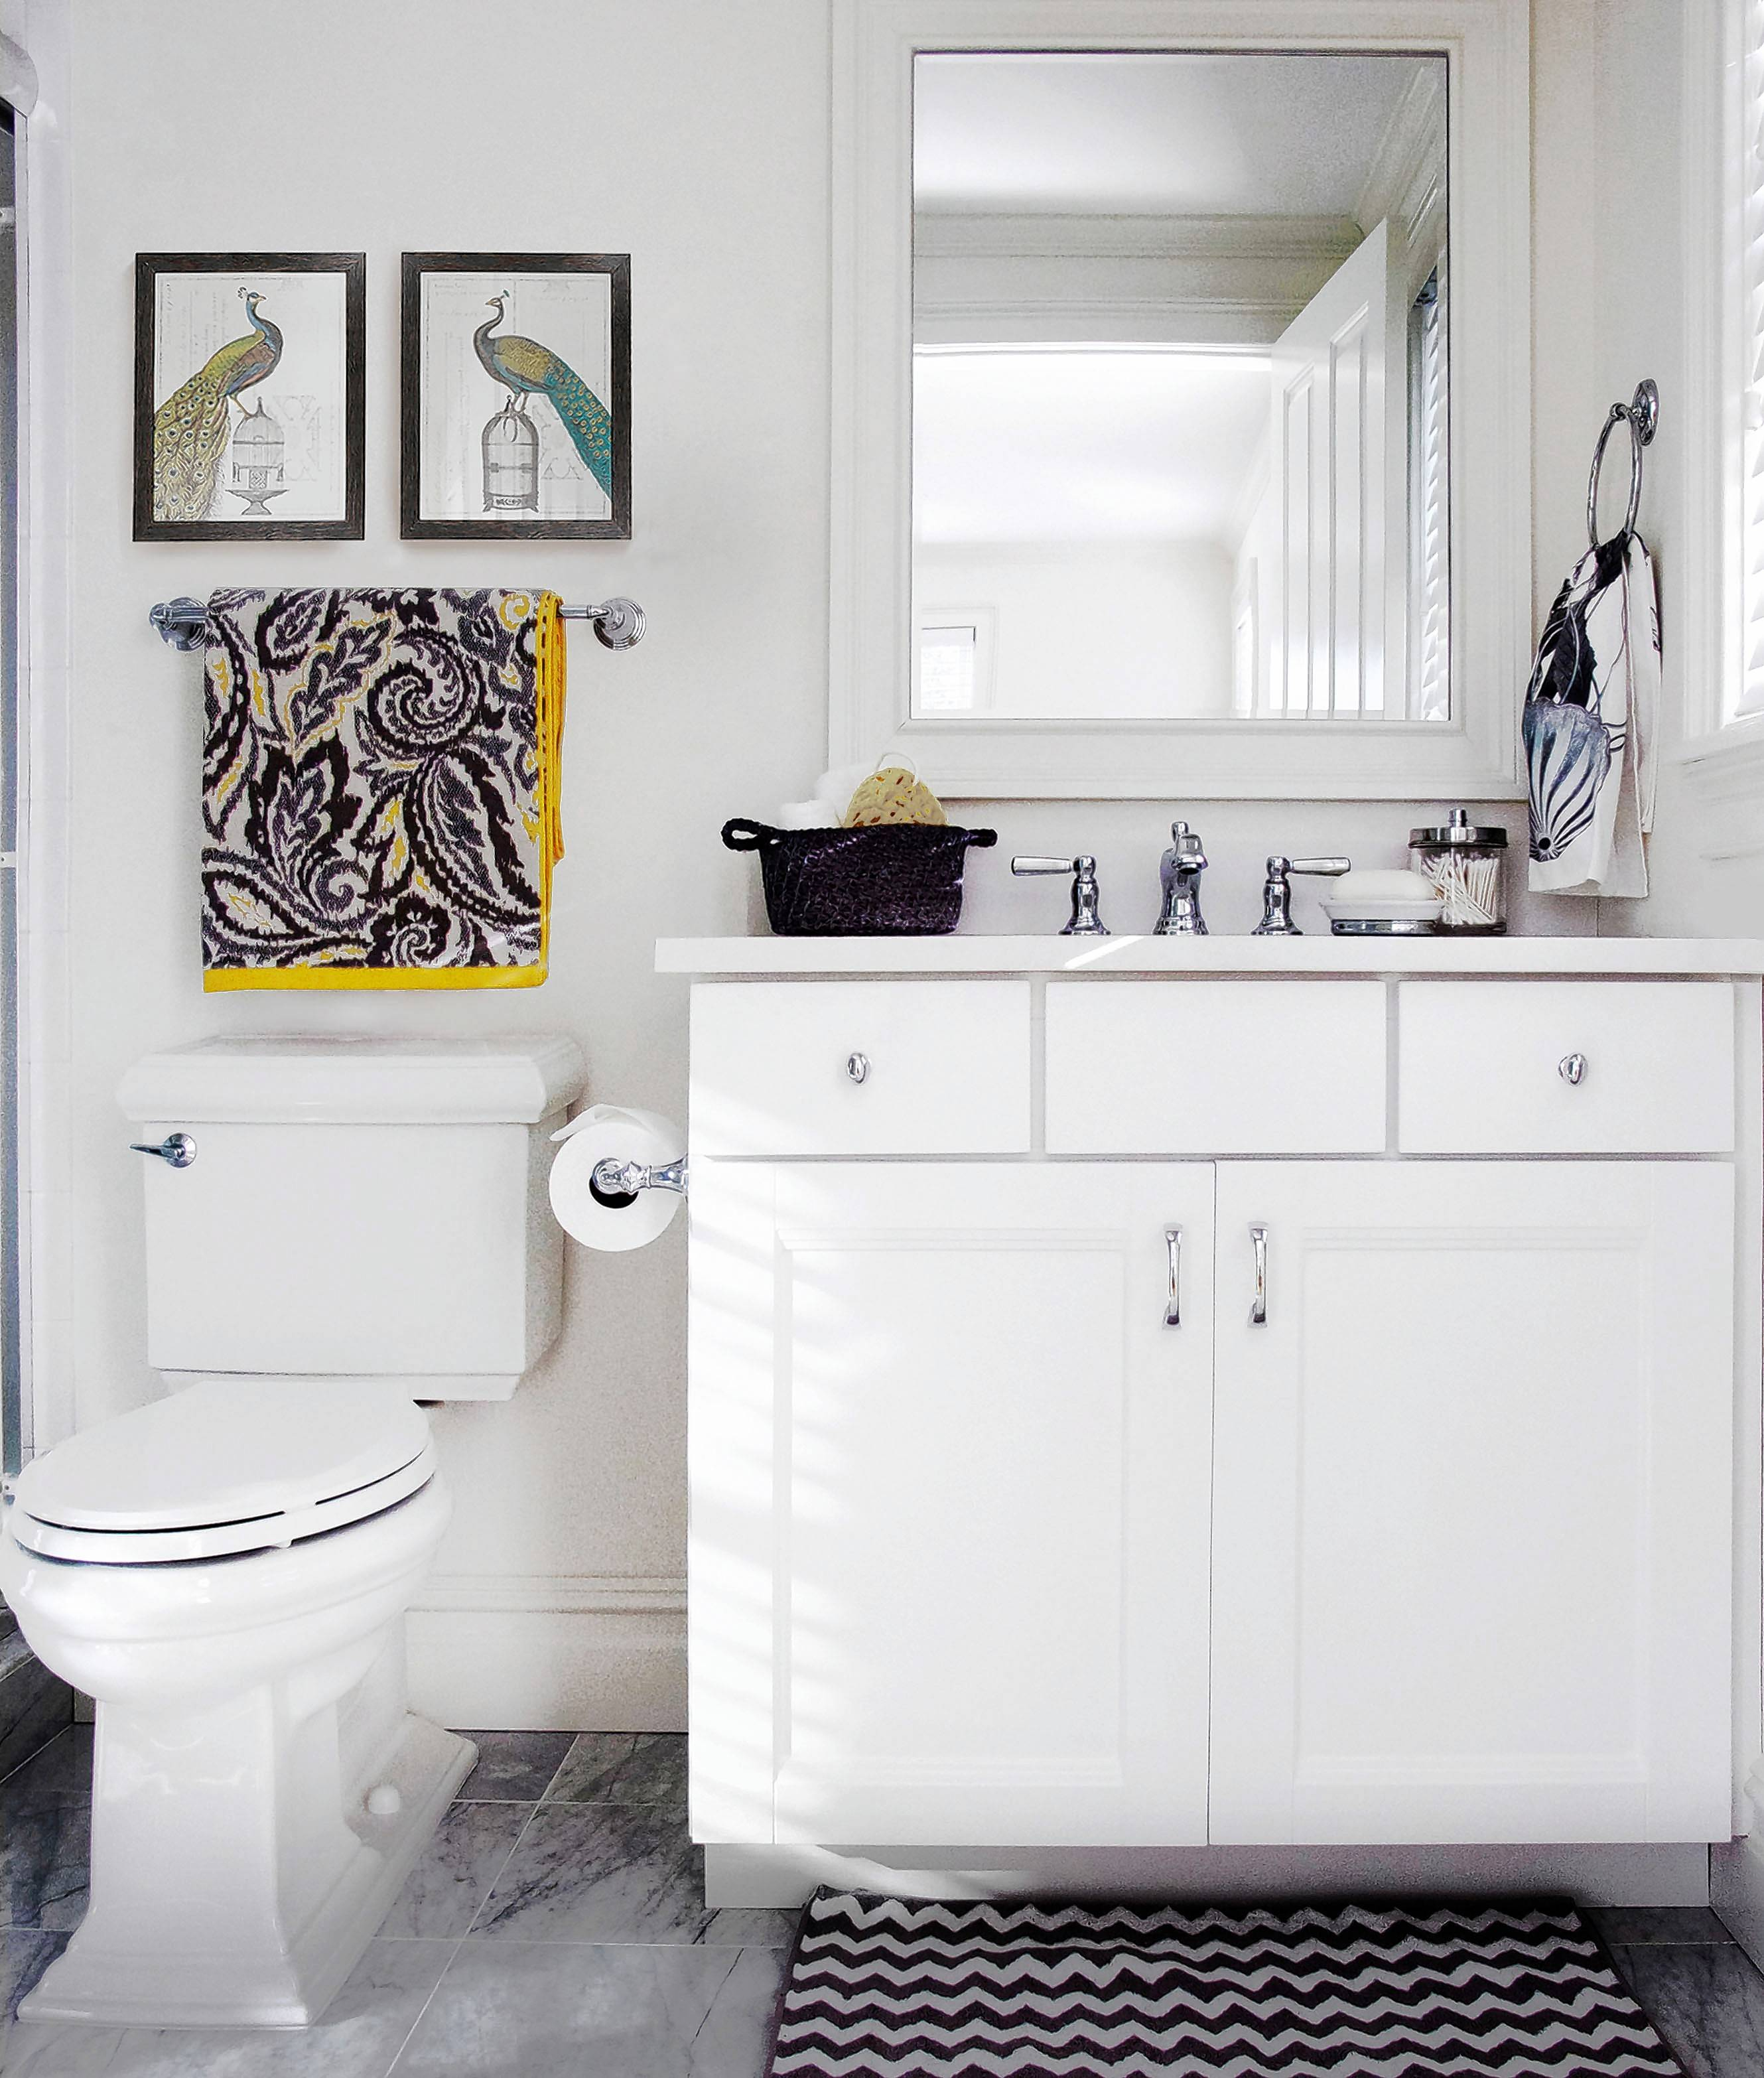 Painting bathrooms white with white cabinets allows you to decorate with fun and vibrant accessories such as towels, art, baskets and canisters.